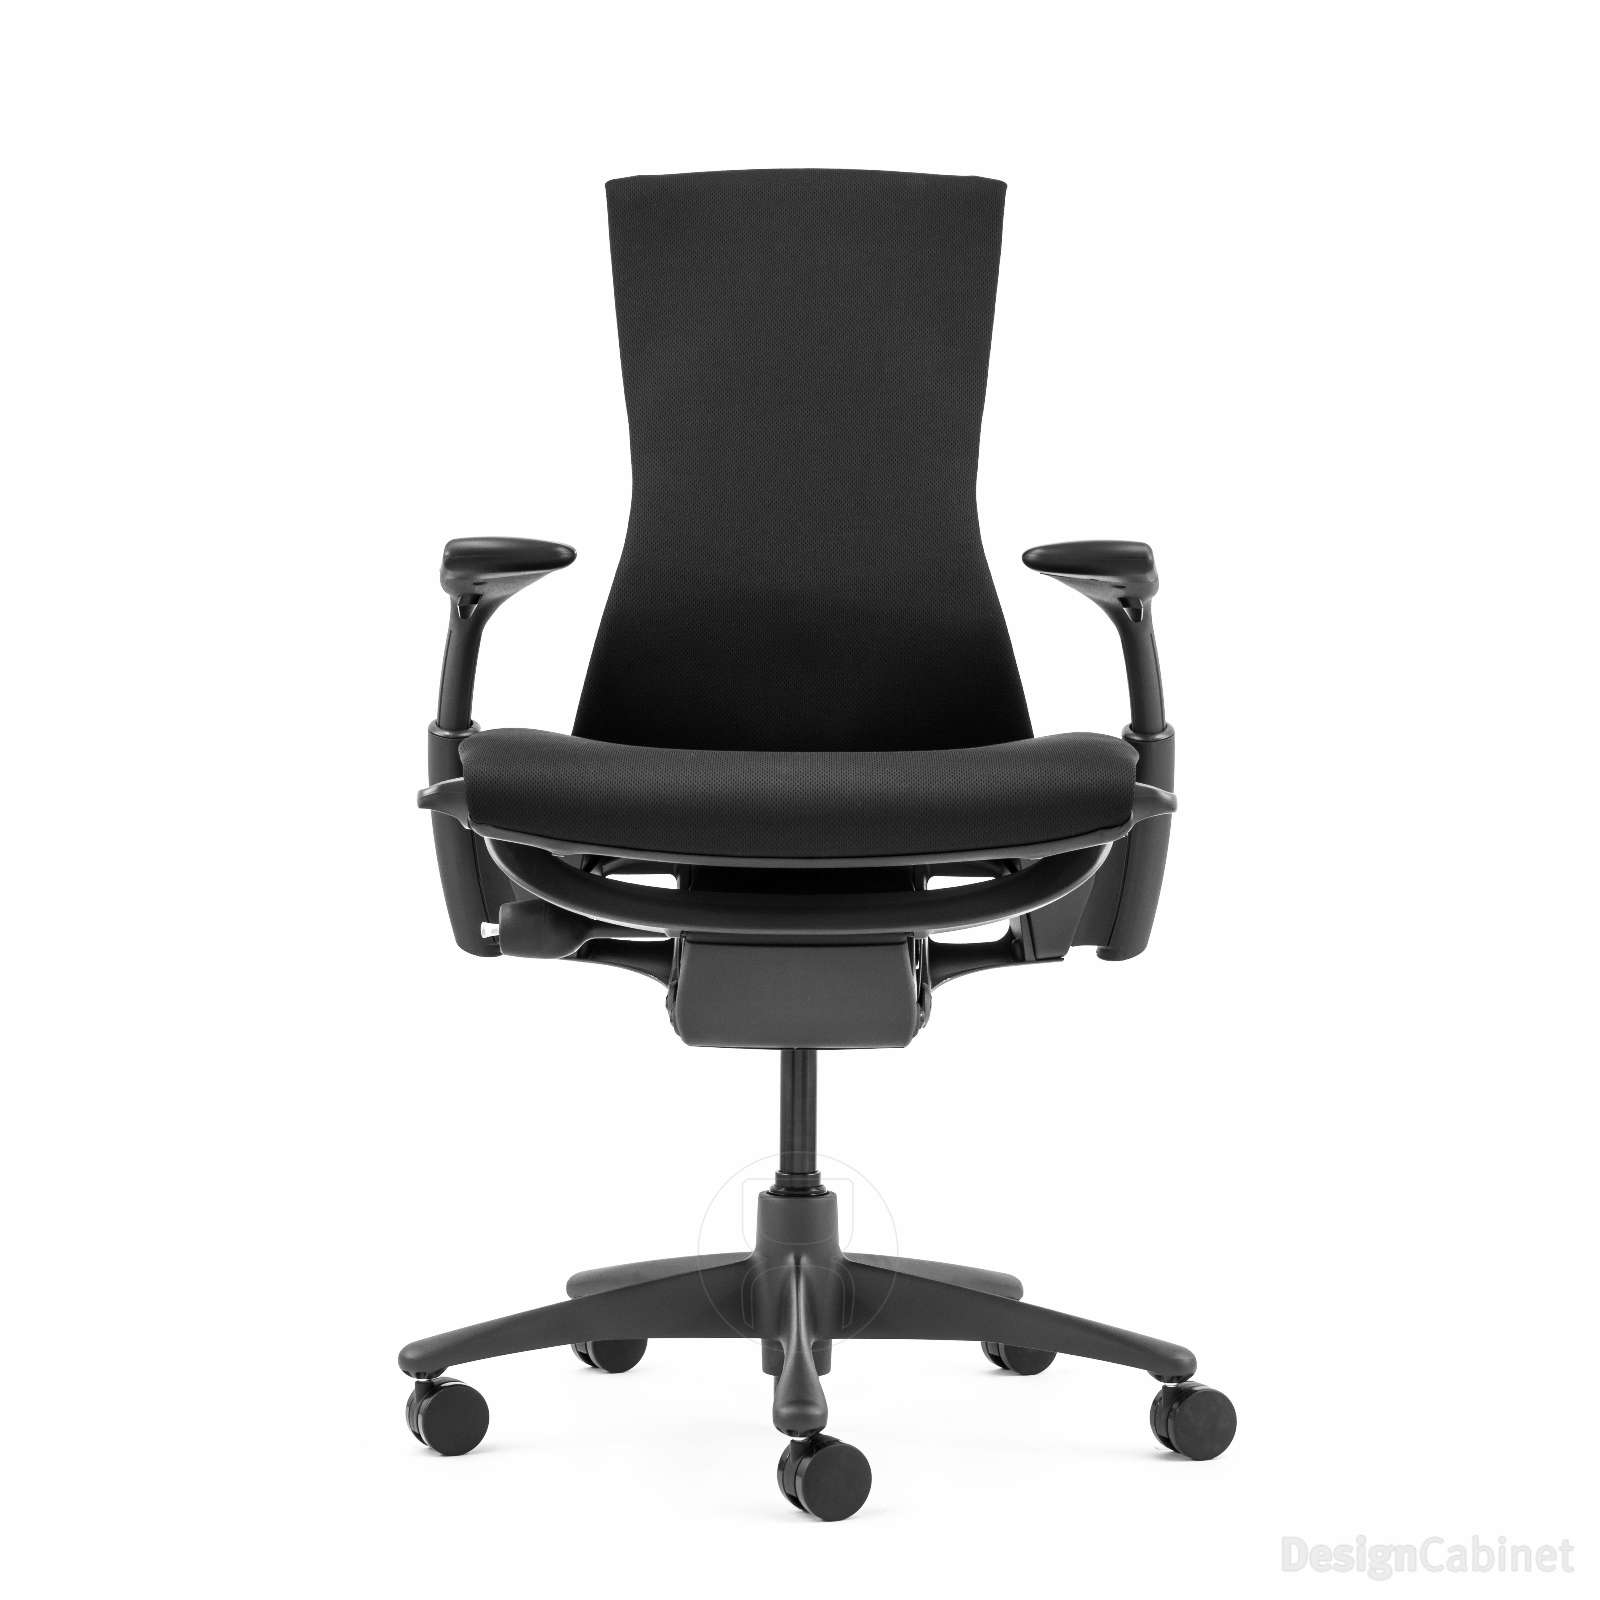 DesignCabinet – official Herman Miller Store with Aeron Chair